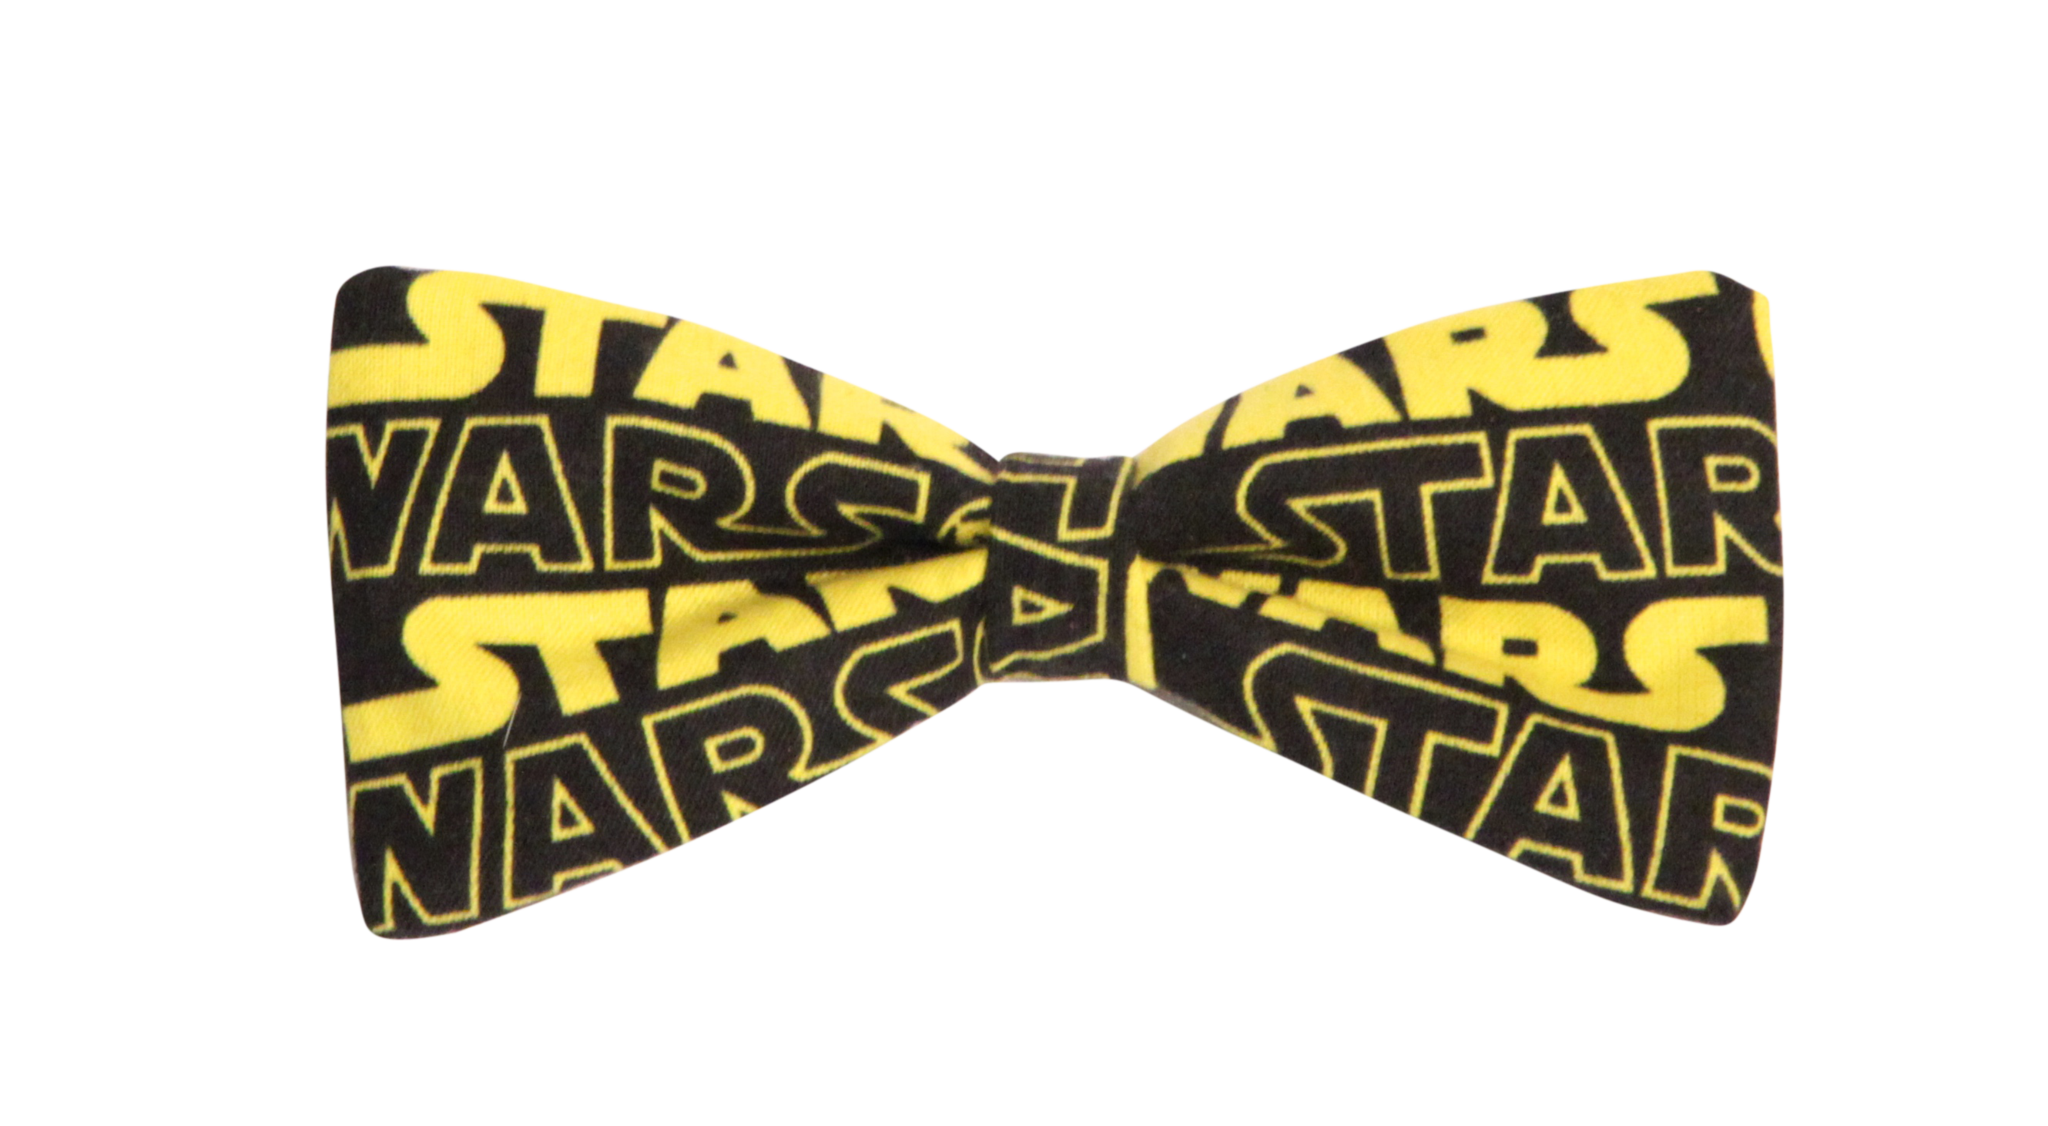 Star wars logo bow tie